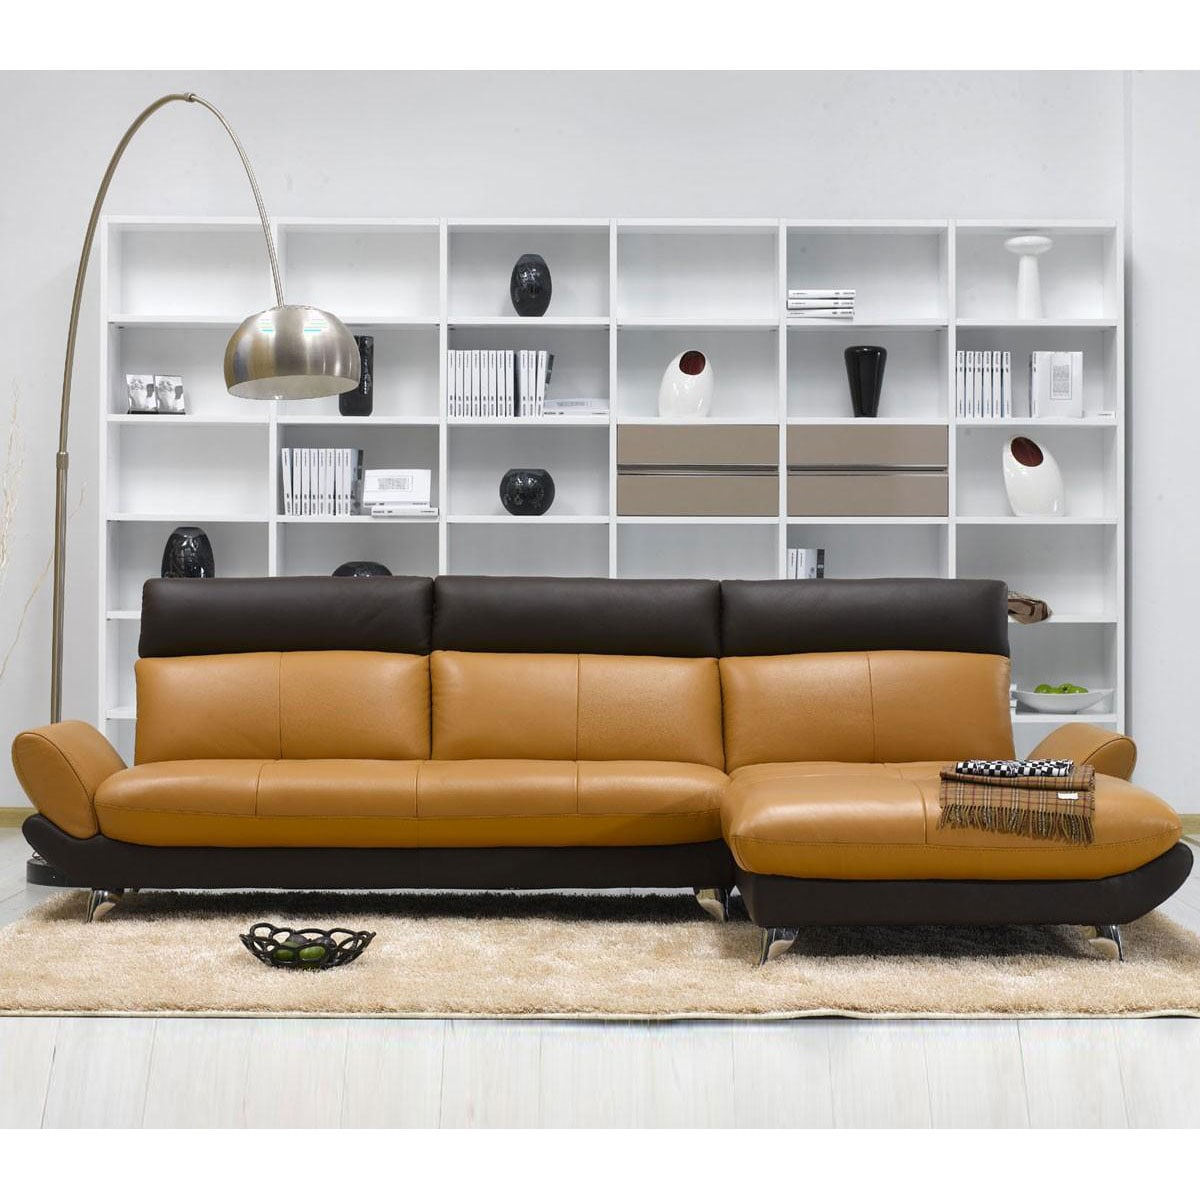 Shop Tosh Furniture Caramel Brown Leather Sectional Sofa